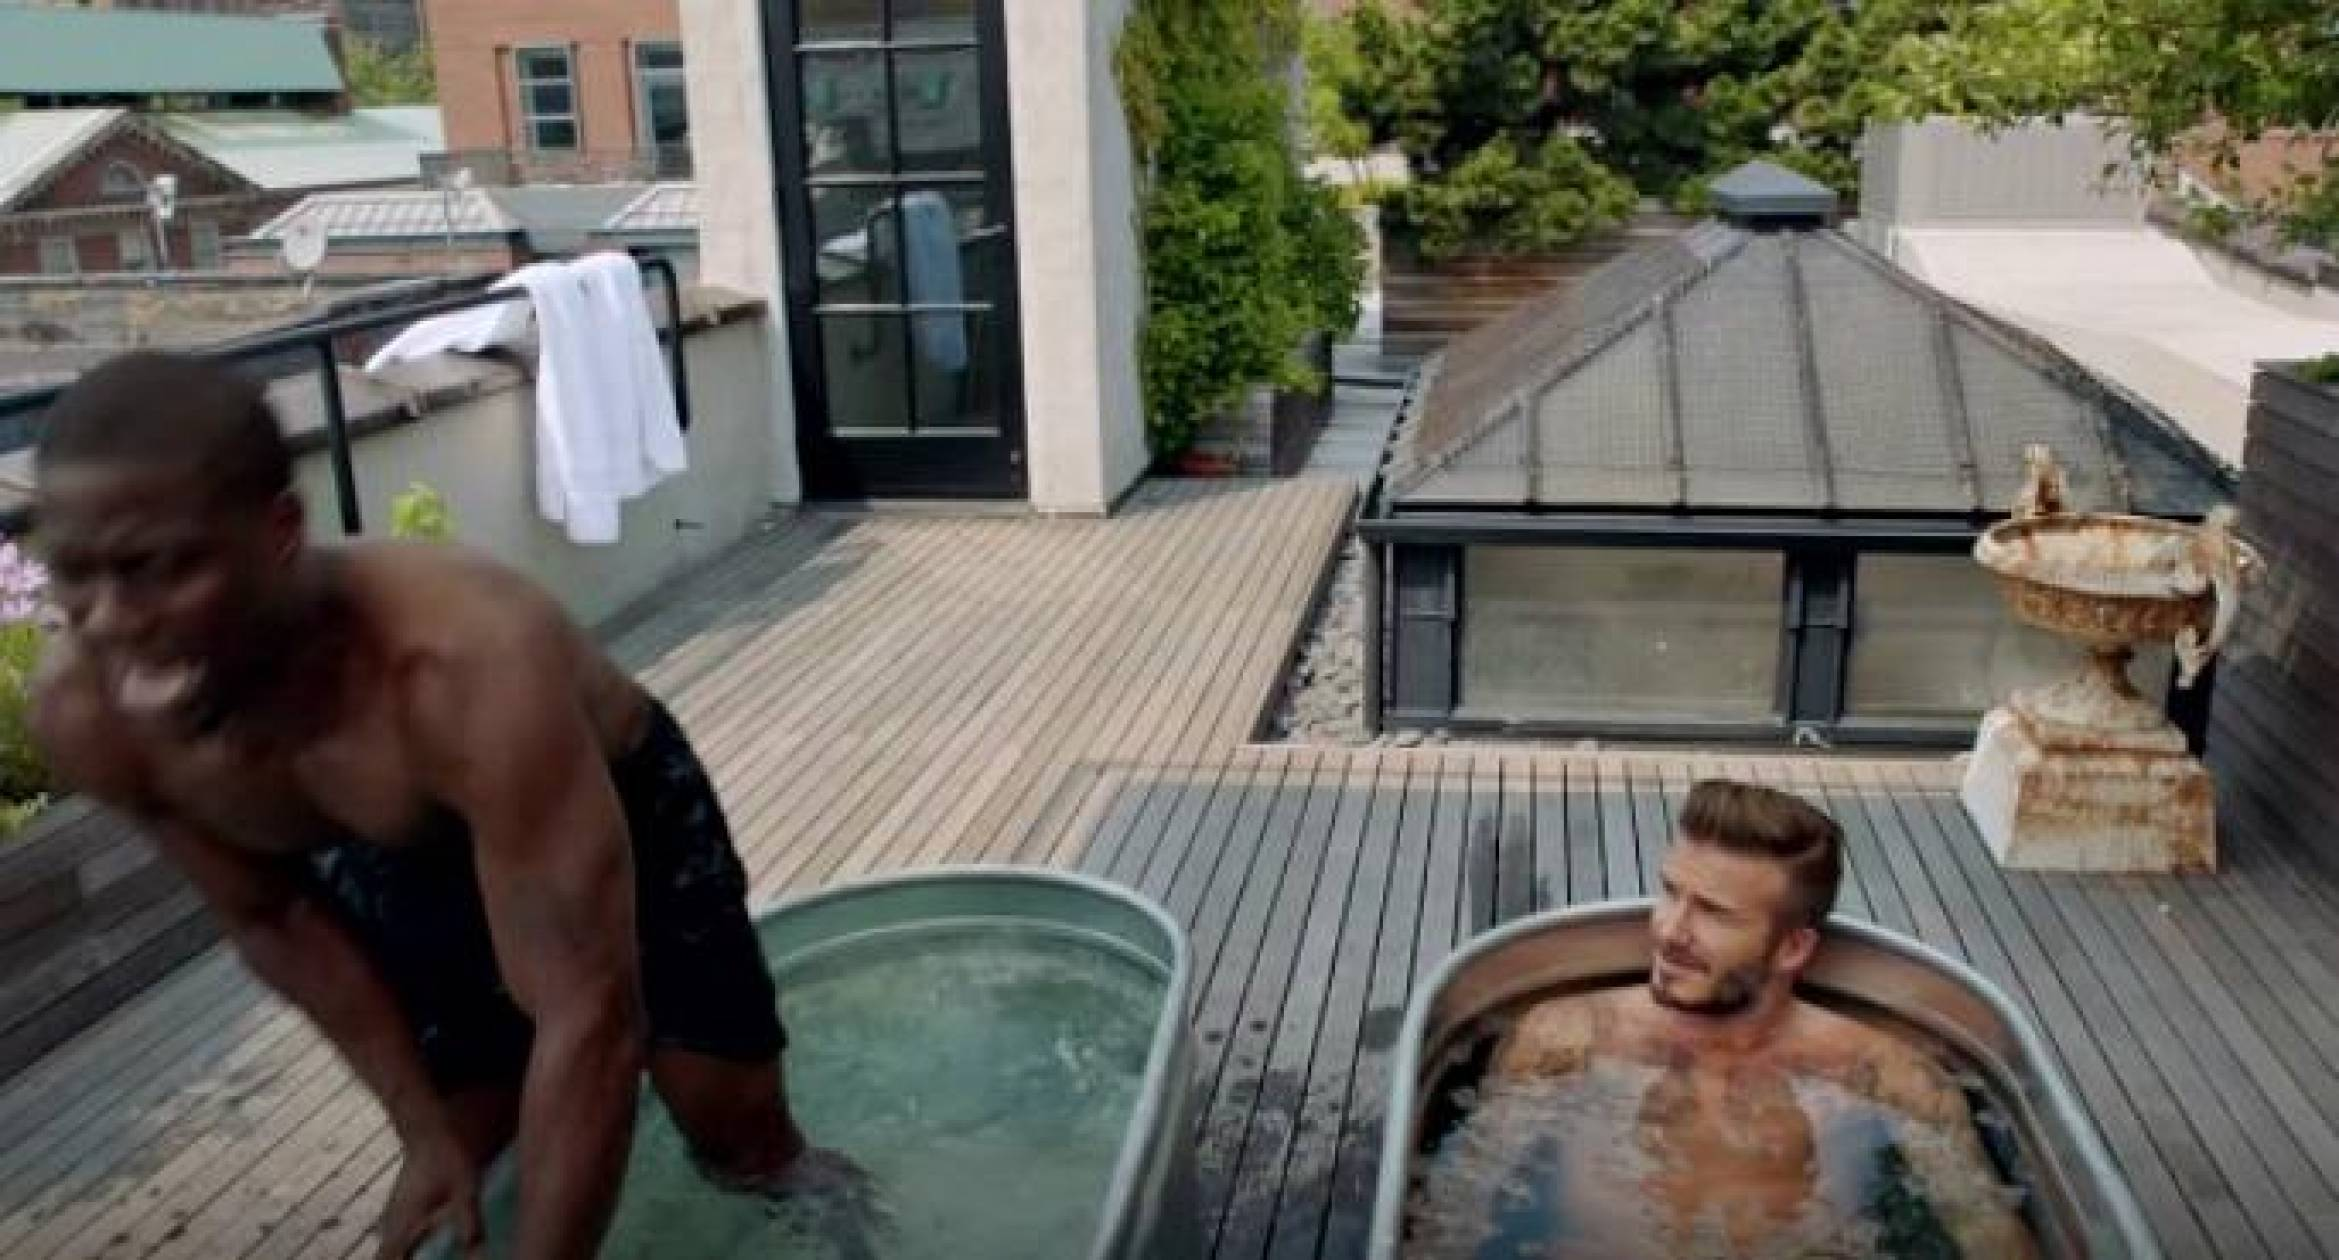 Anderson opened his home up to H&M to shoot a commercial with Kevin Hart and David Beckham. This is a screenshot from that commercial. Not other interior photos have been made public.